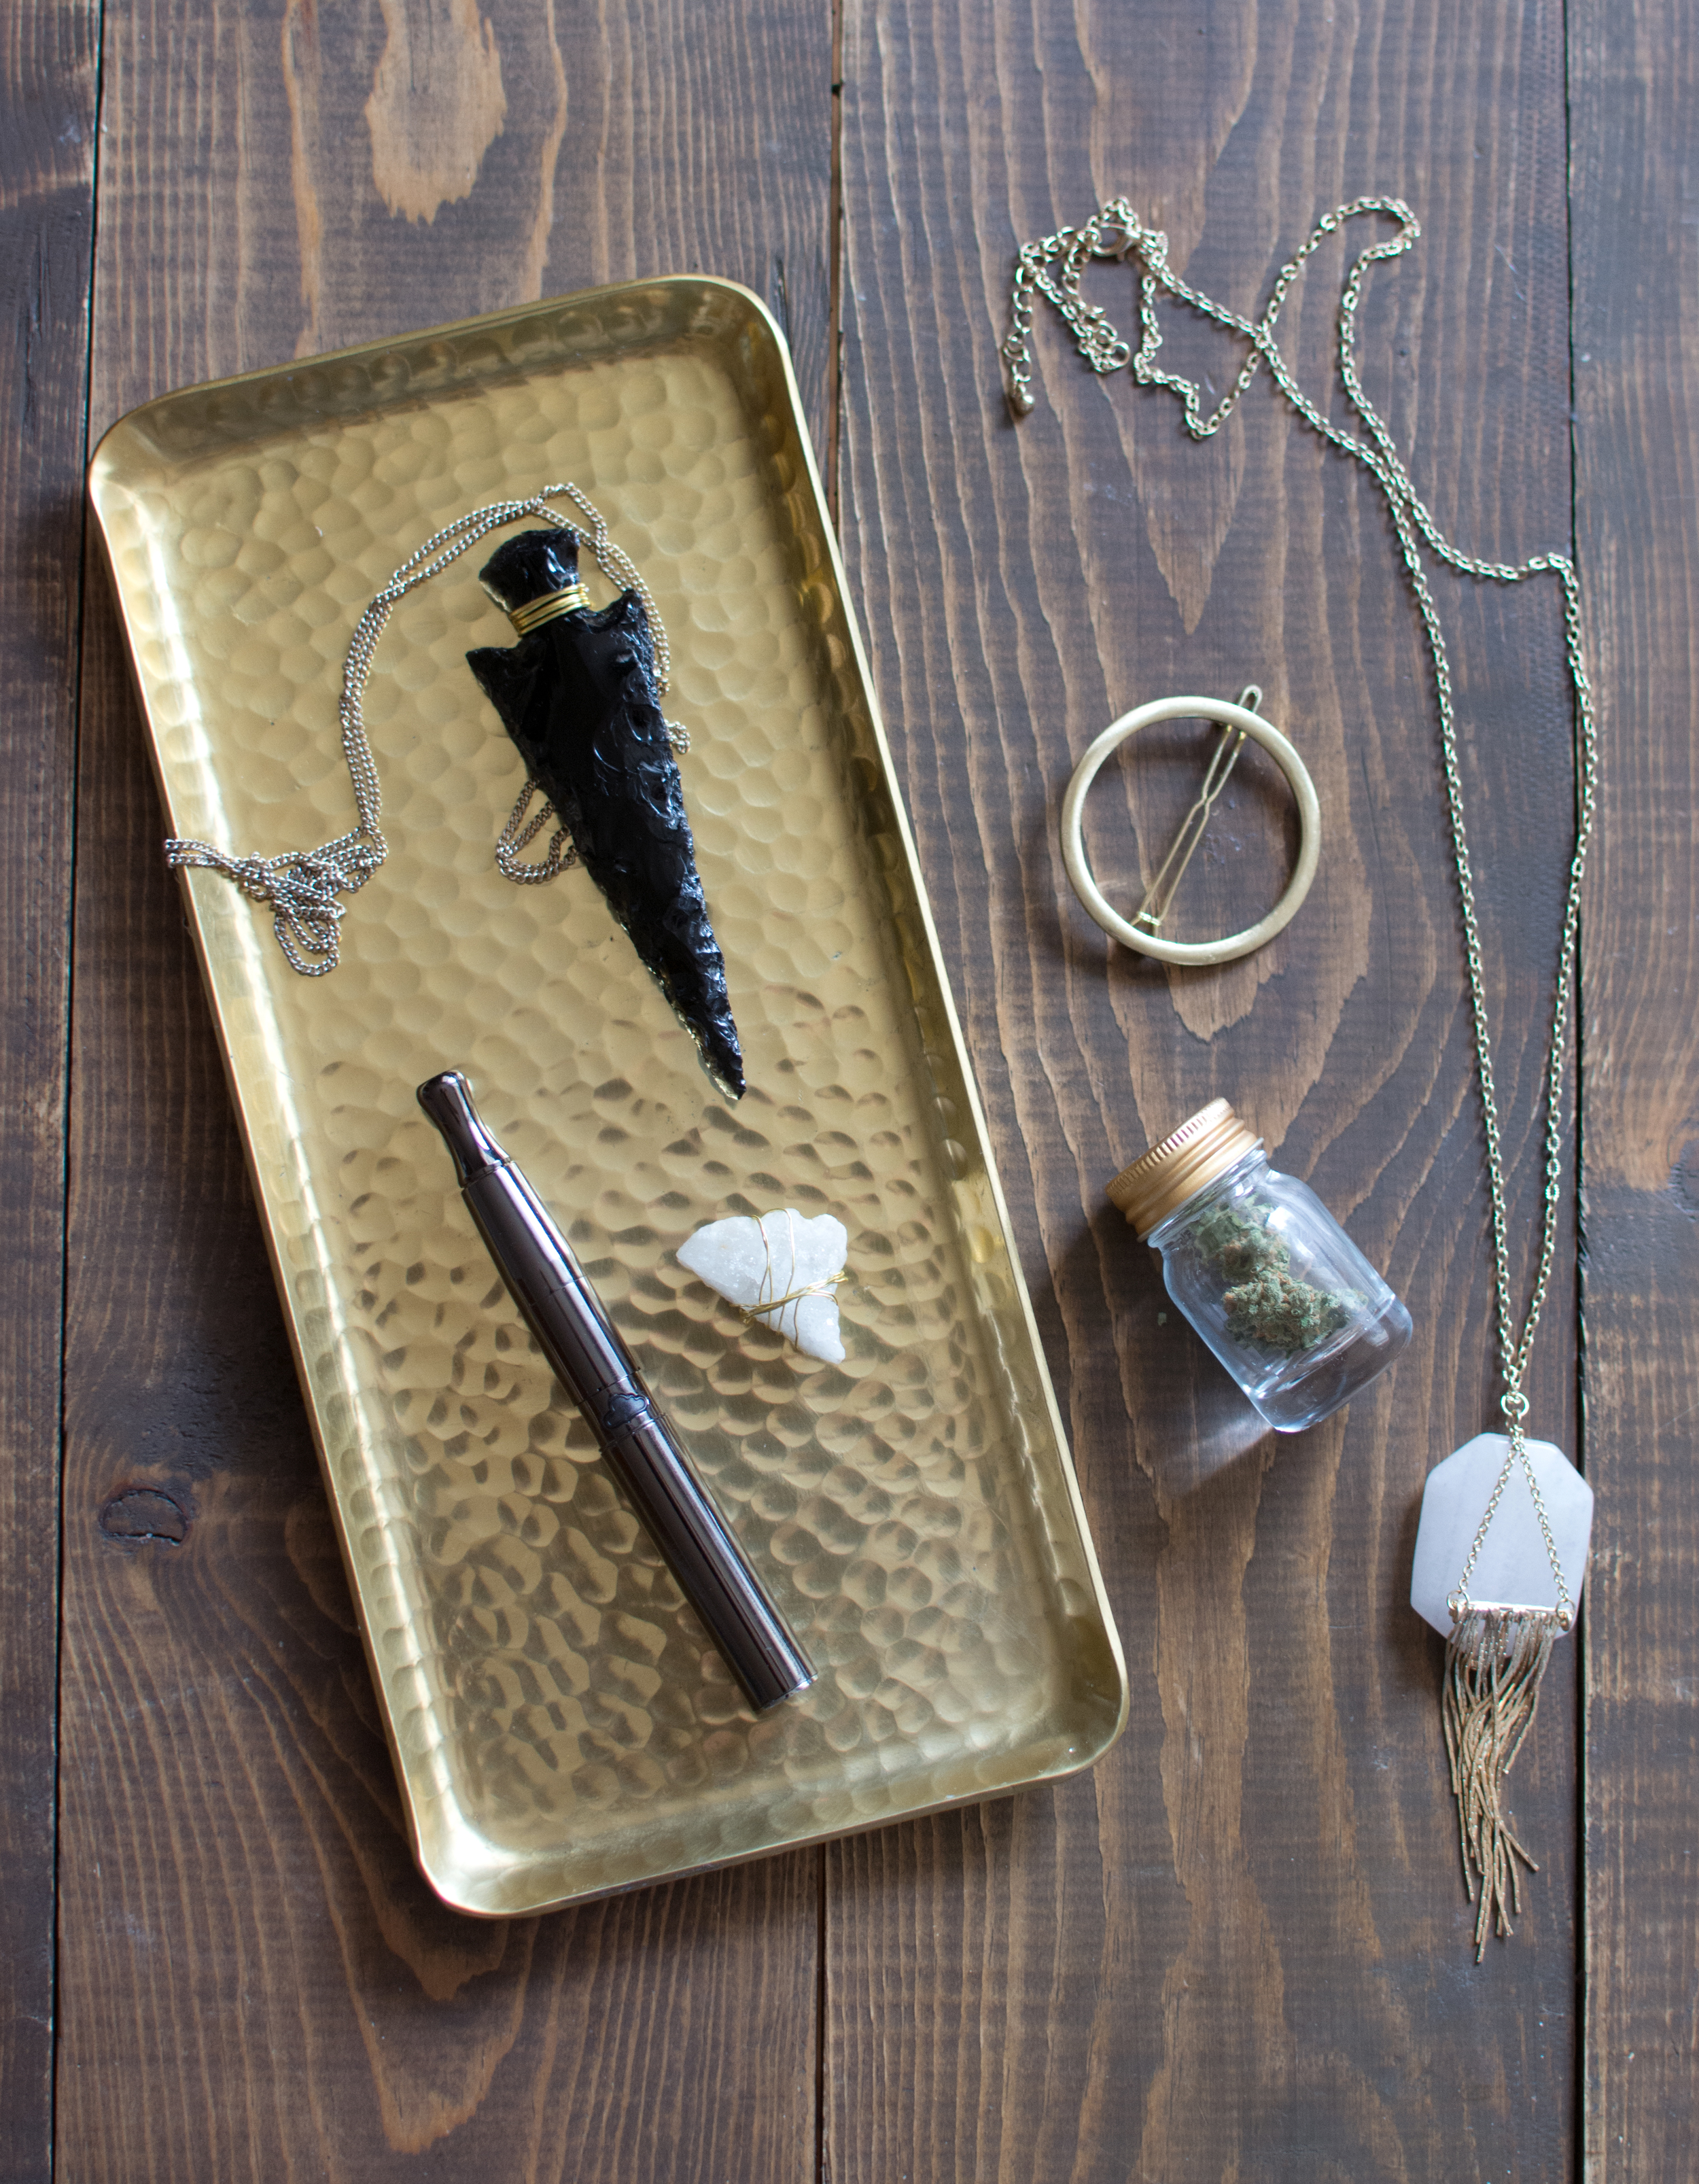 Gold tray from Hobby Lobby  / Puffco reloadable concentrate vape pen  /Obsidian arrow head from crystal shop in Sedona / Quartz crystal from Earthbound  / Gold circle hair clip from Francescas  /  Quartz + Gold crystal necklace from Francescas  /  Miniature gold-lidded jar from Michael's  /  Durban Berry bud from The Farm Co.